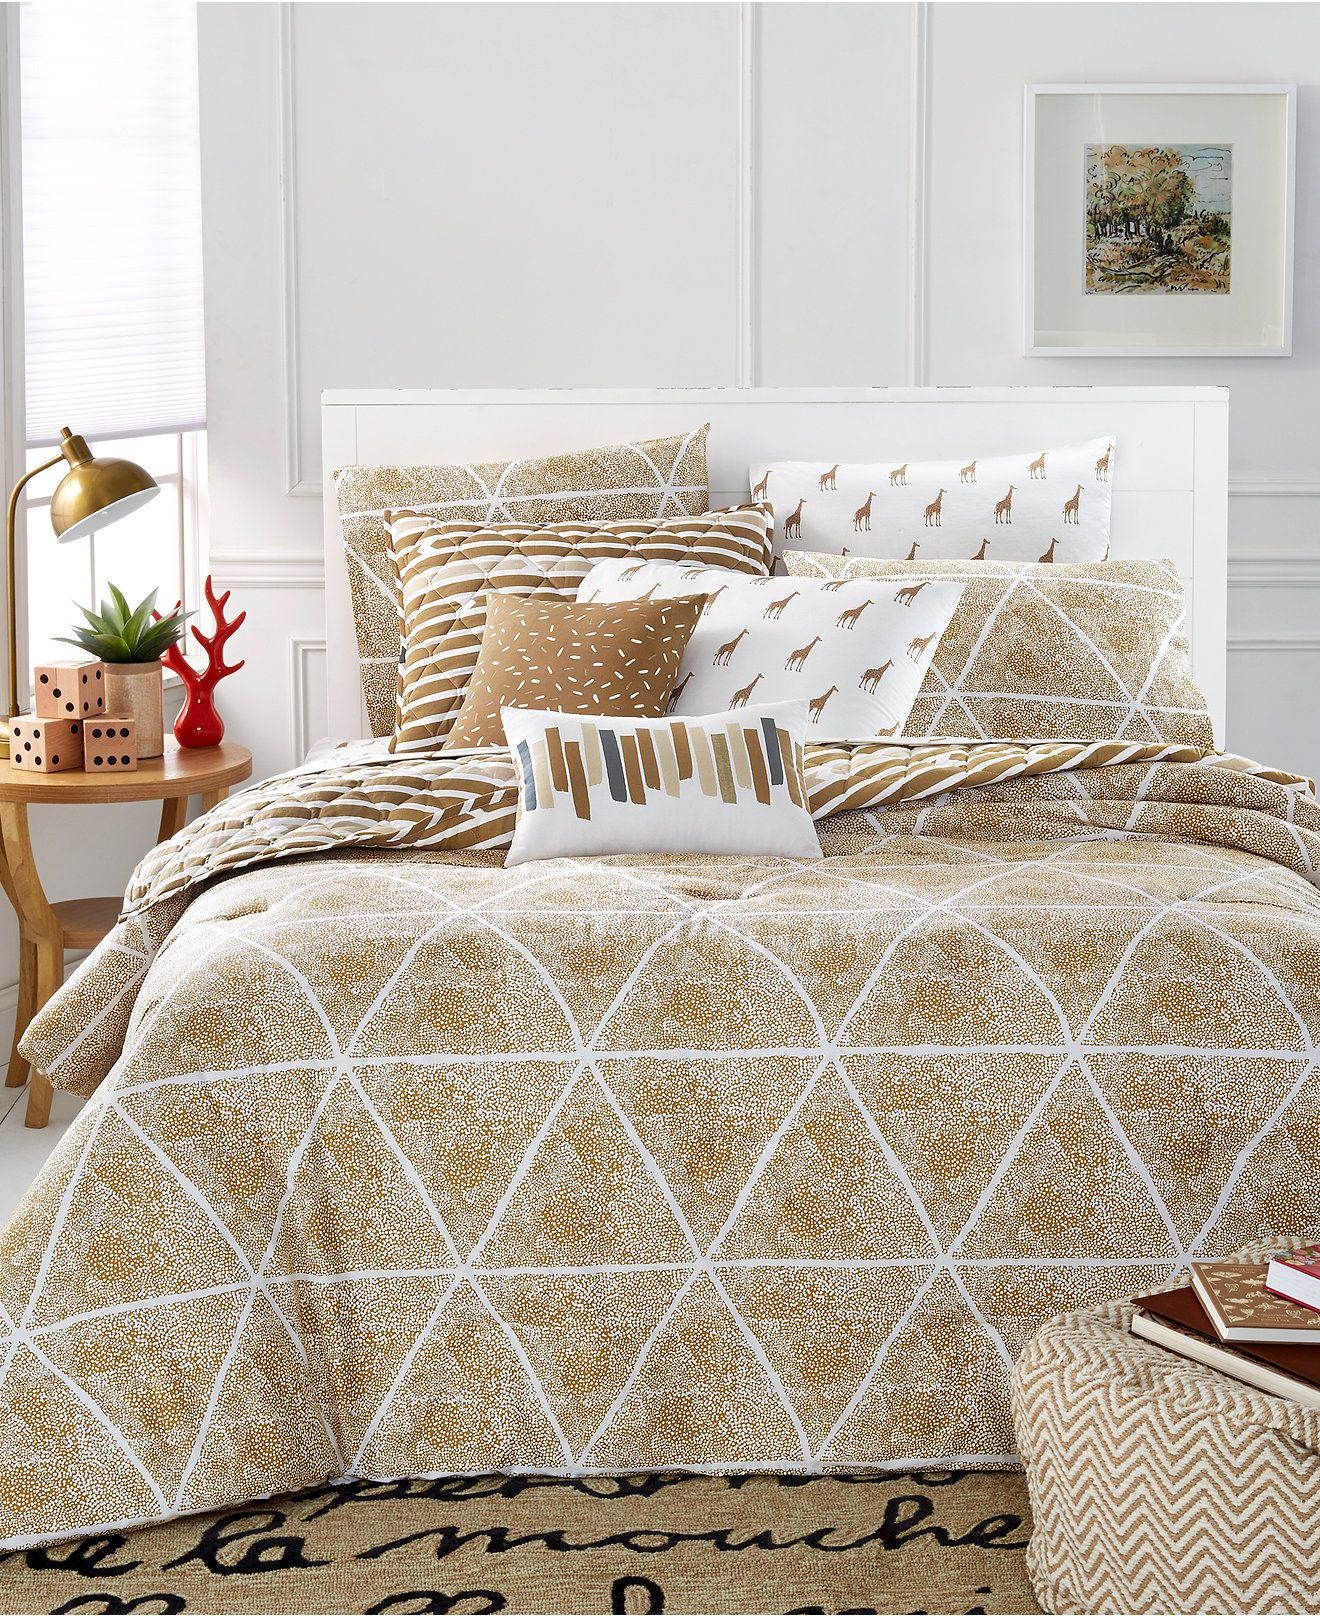 Closoeut Martha Stewart Collection Whim Bespeckled Collection Bedding Collections Bed